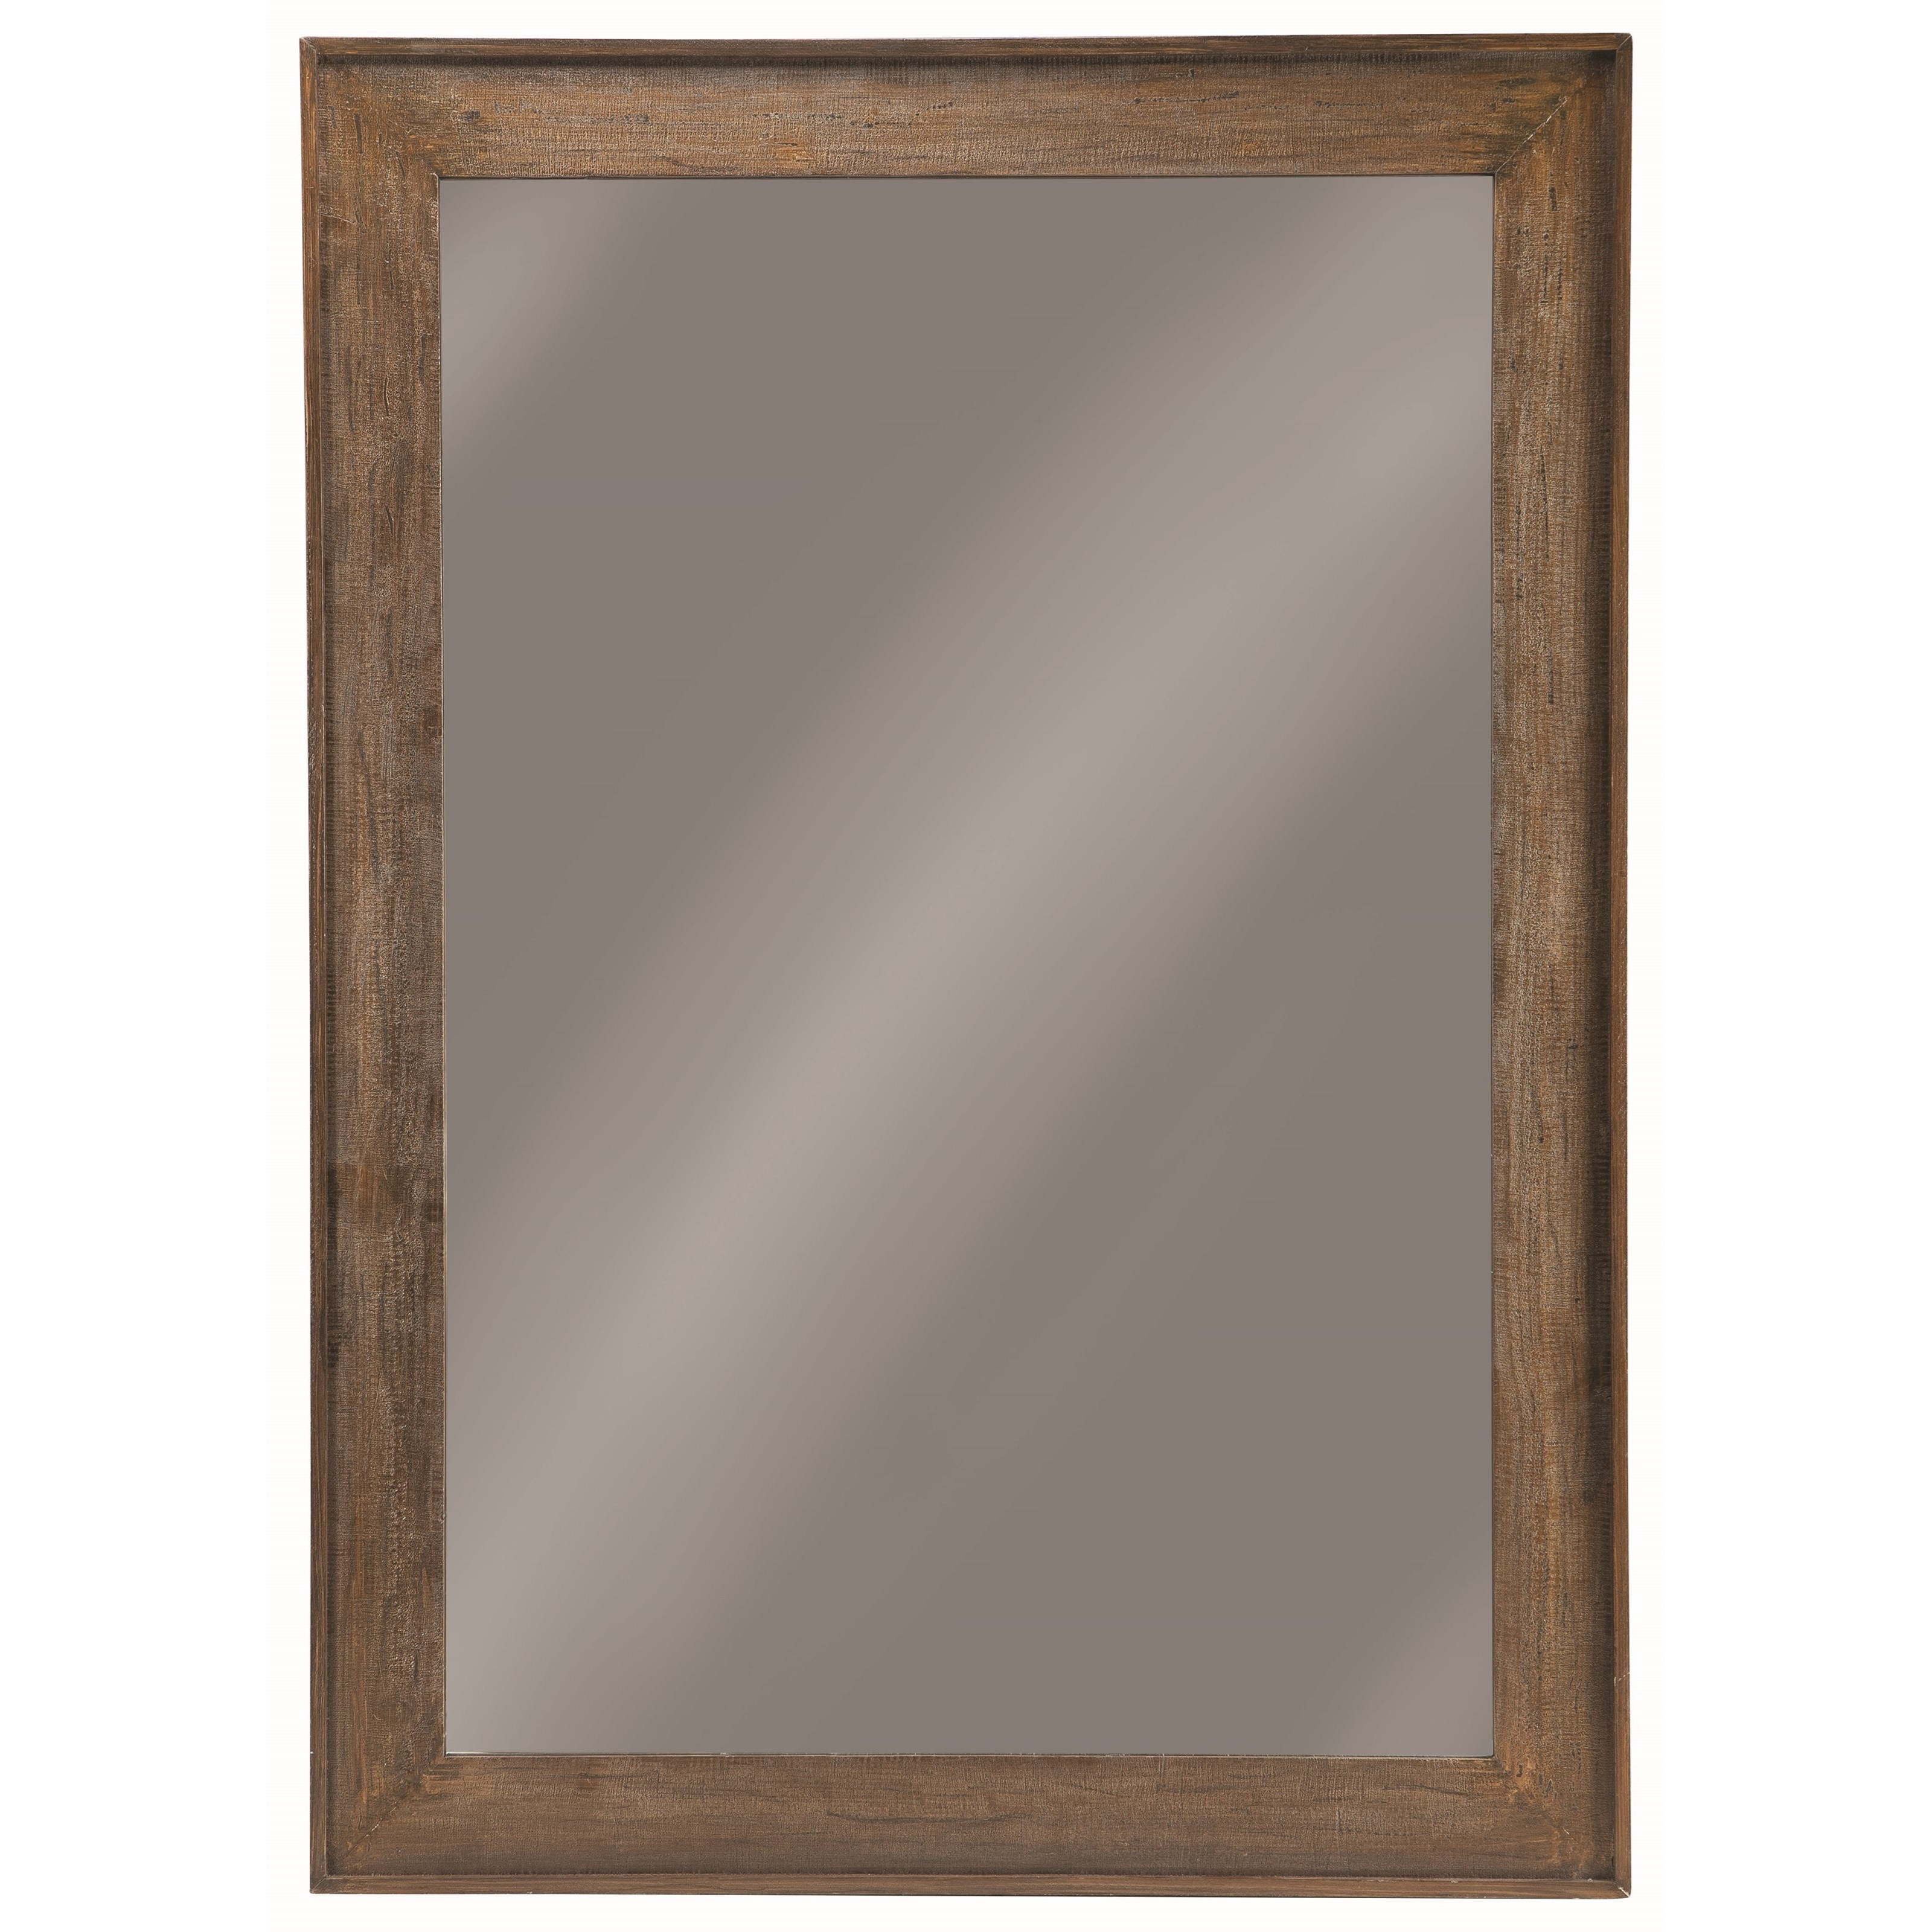 Coaster accent mirrors 902770 accent mirror with for Accent mirrors